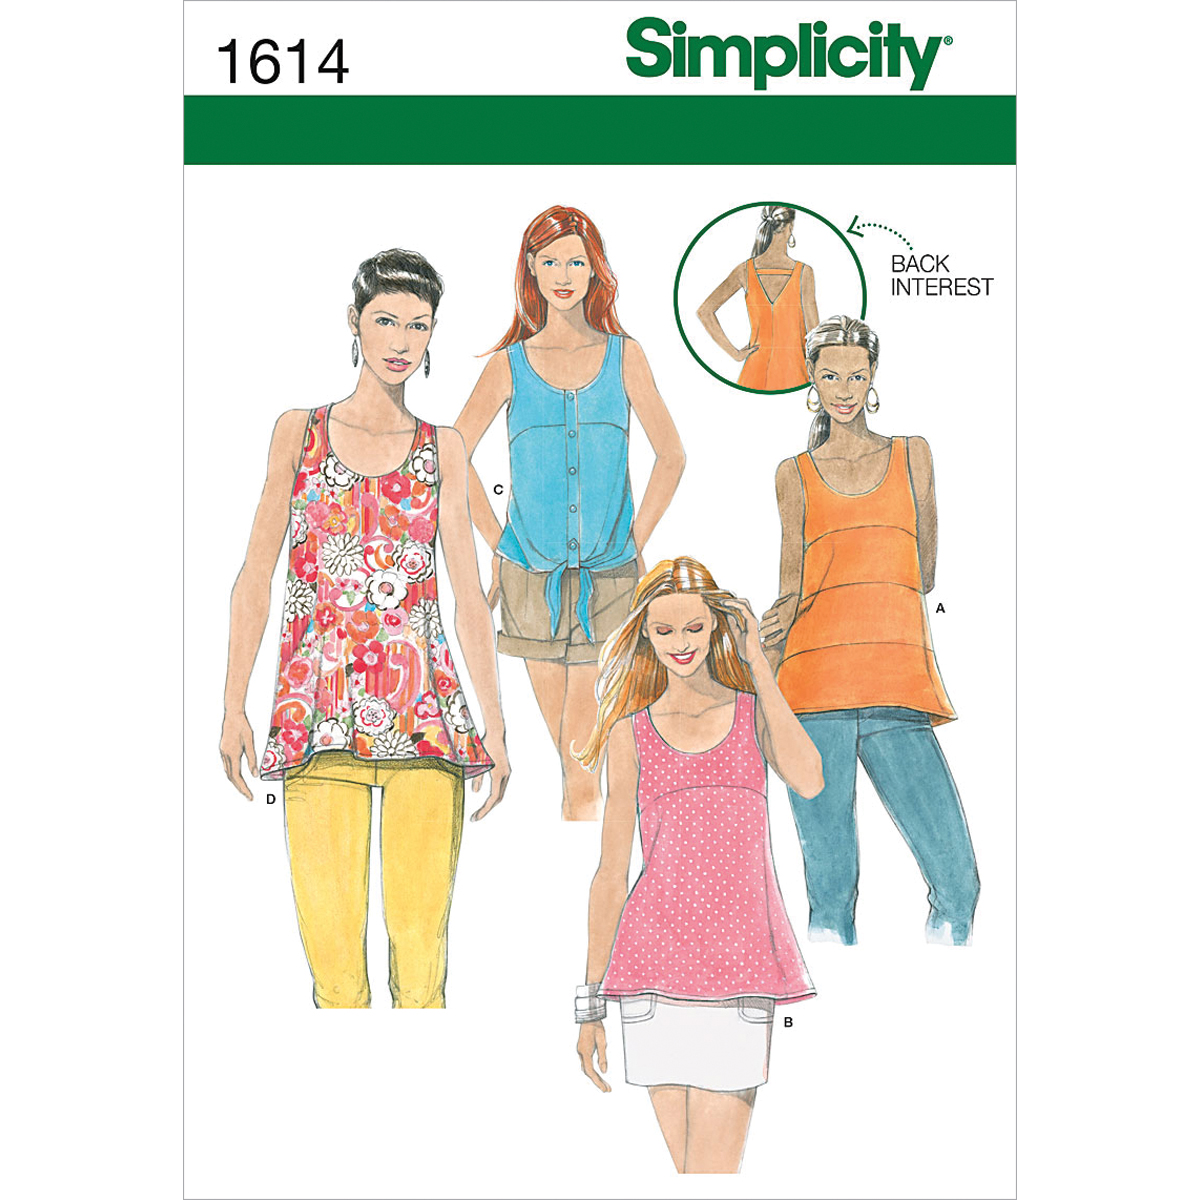 Simplicity Pattern 1614P5 12-14-16-1-Simplicity Misses To